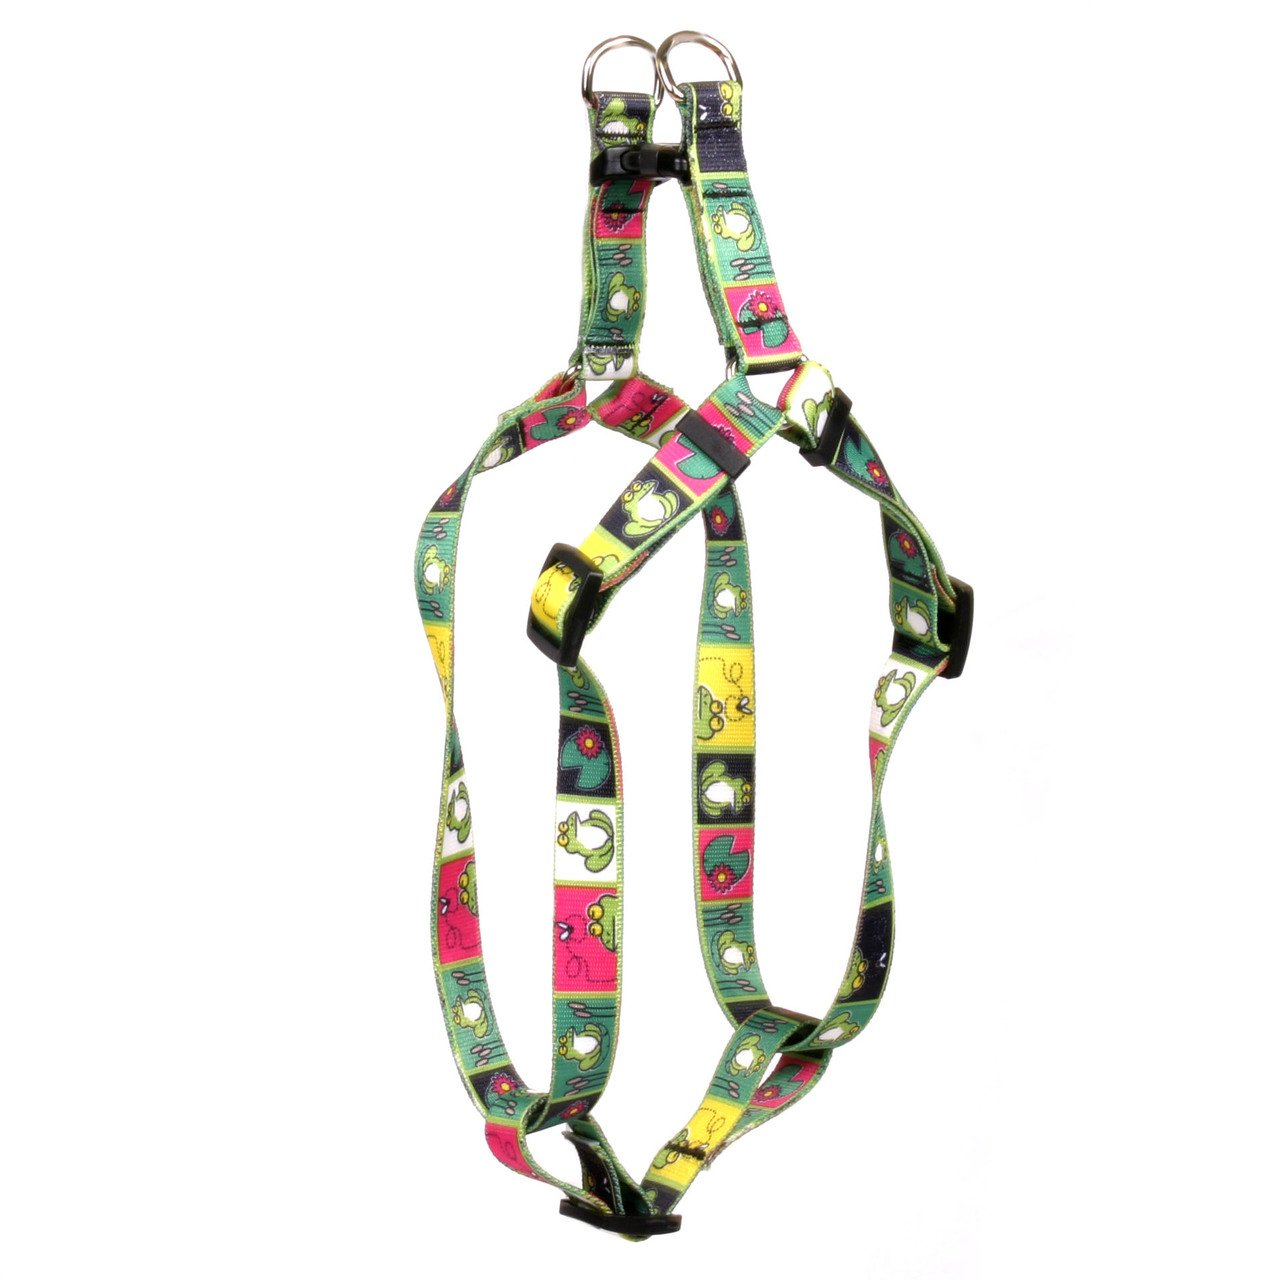 Yellow Dog Design Frogs Step-In Dog Harness 3/4'' Wide And Fits Chest Circumference Of 15 To 25'', Medium